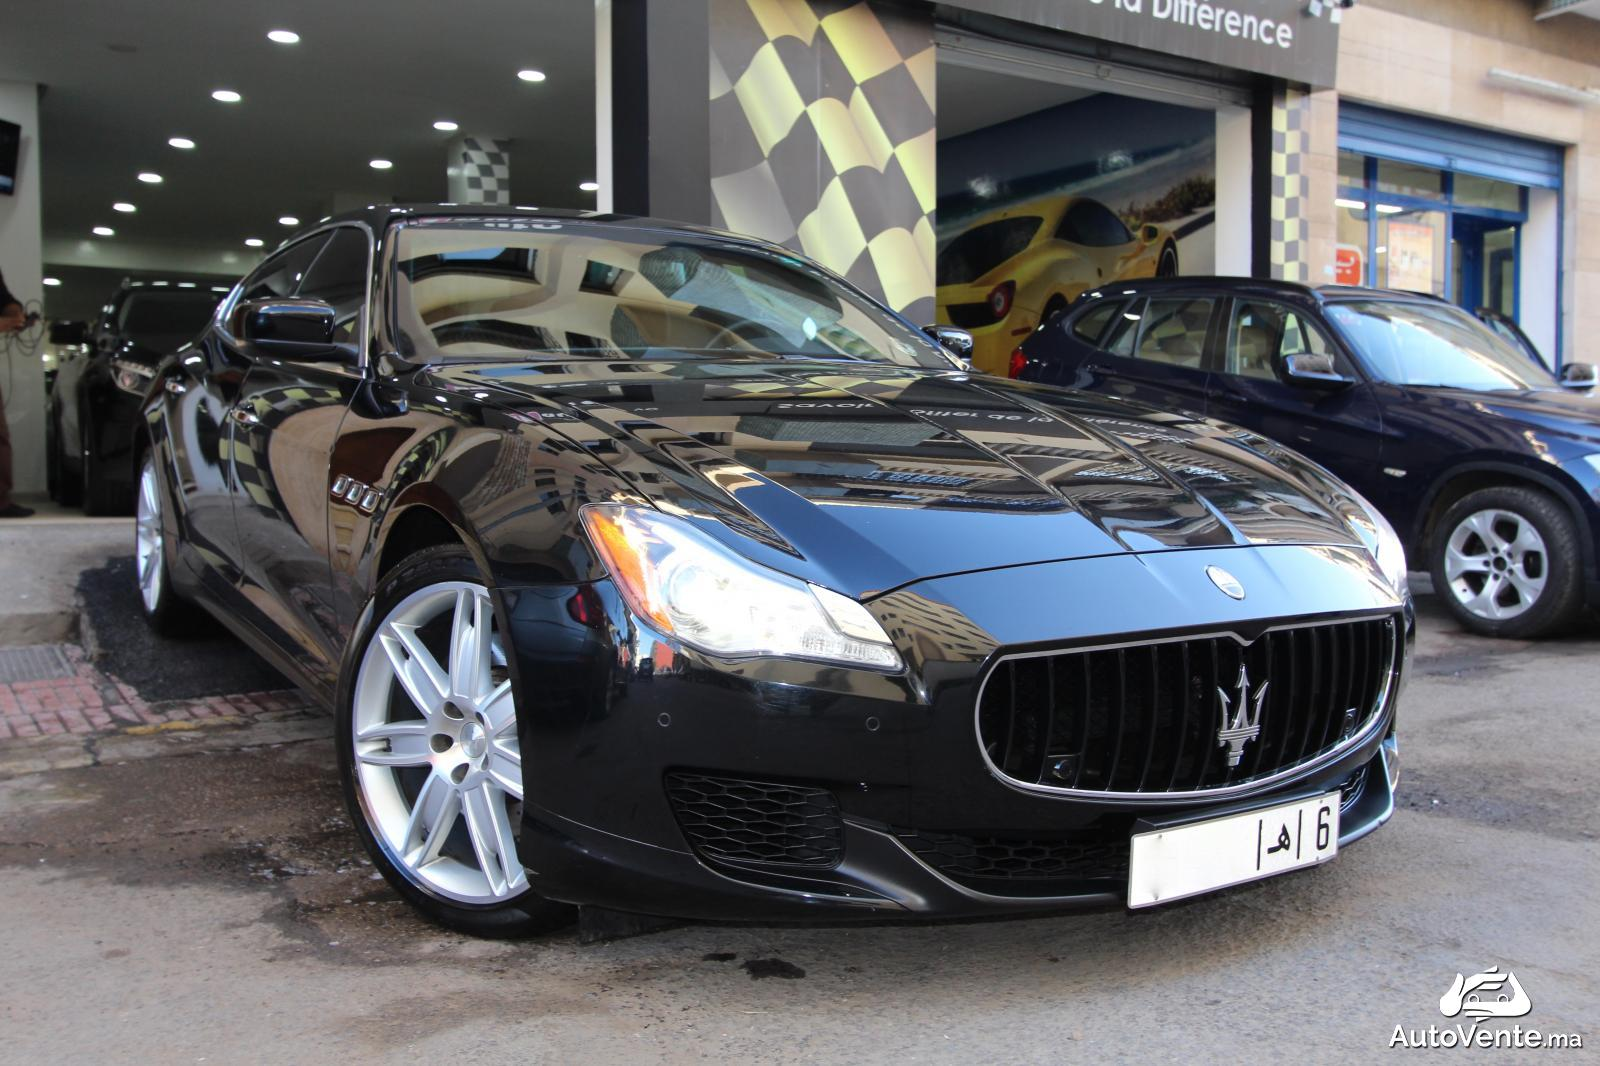 acheter maserati quattroporte d 39 occasion a casablanca maroc autovente. Black Bedroom Furniture Sets. Home Design Ideas